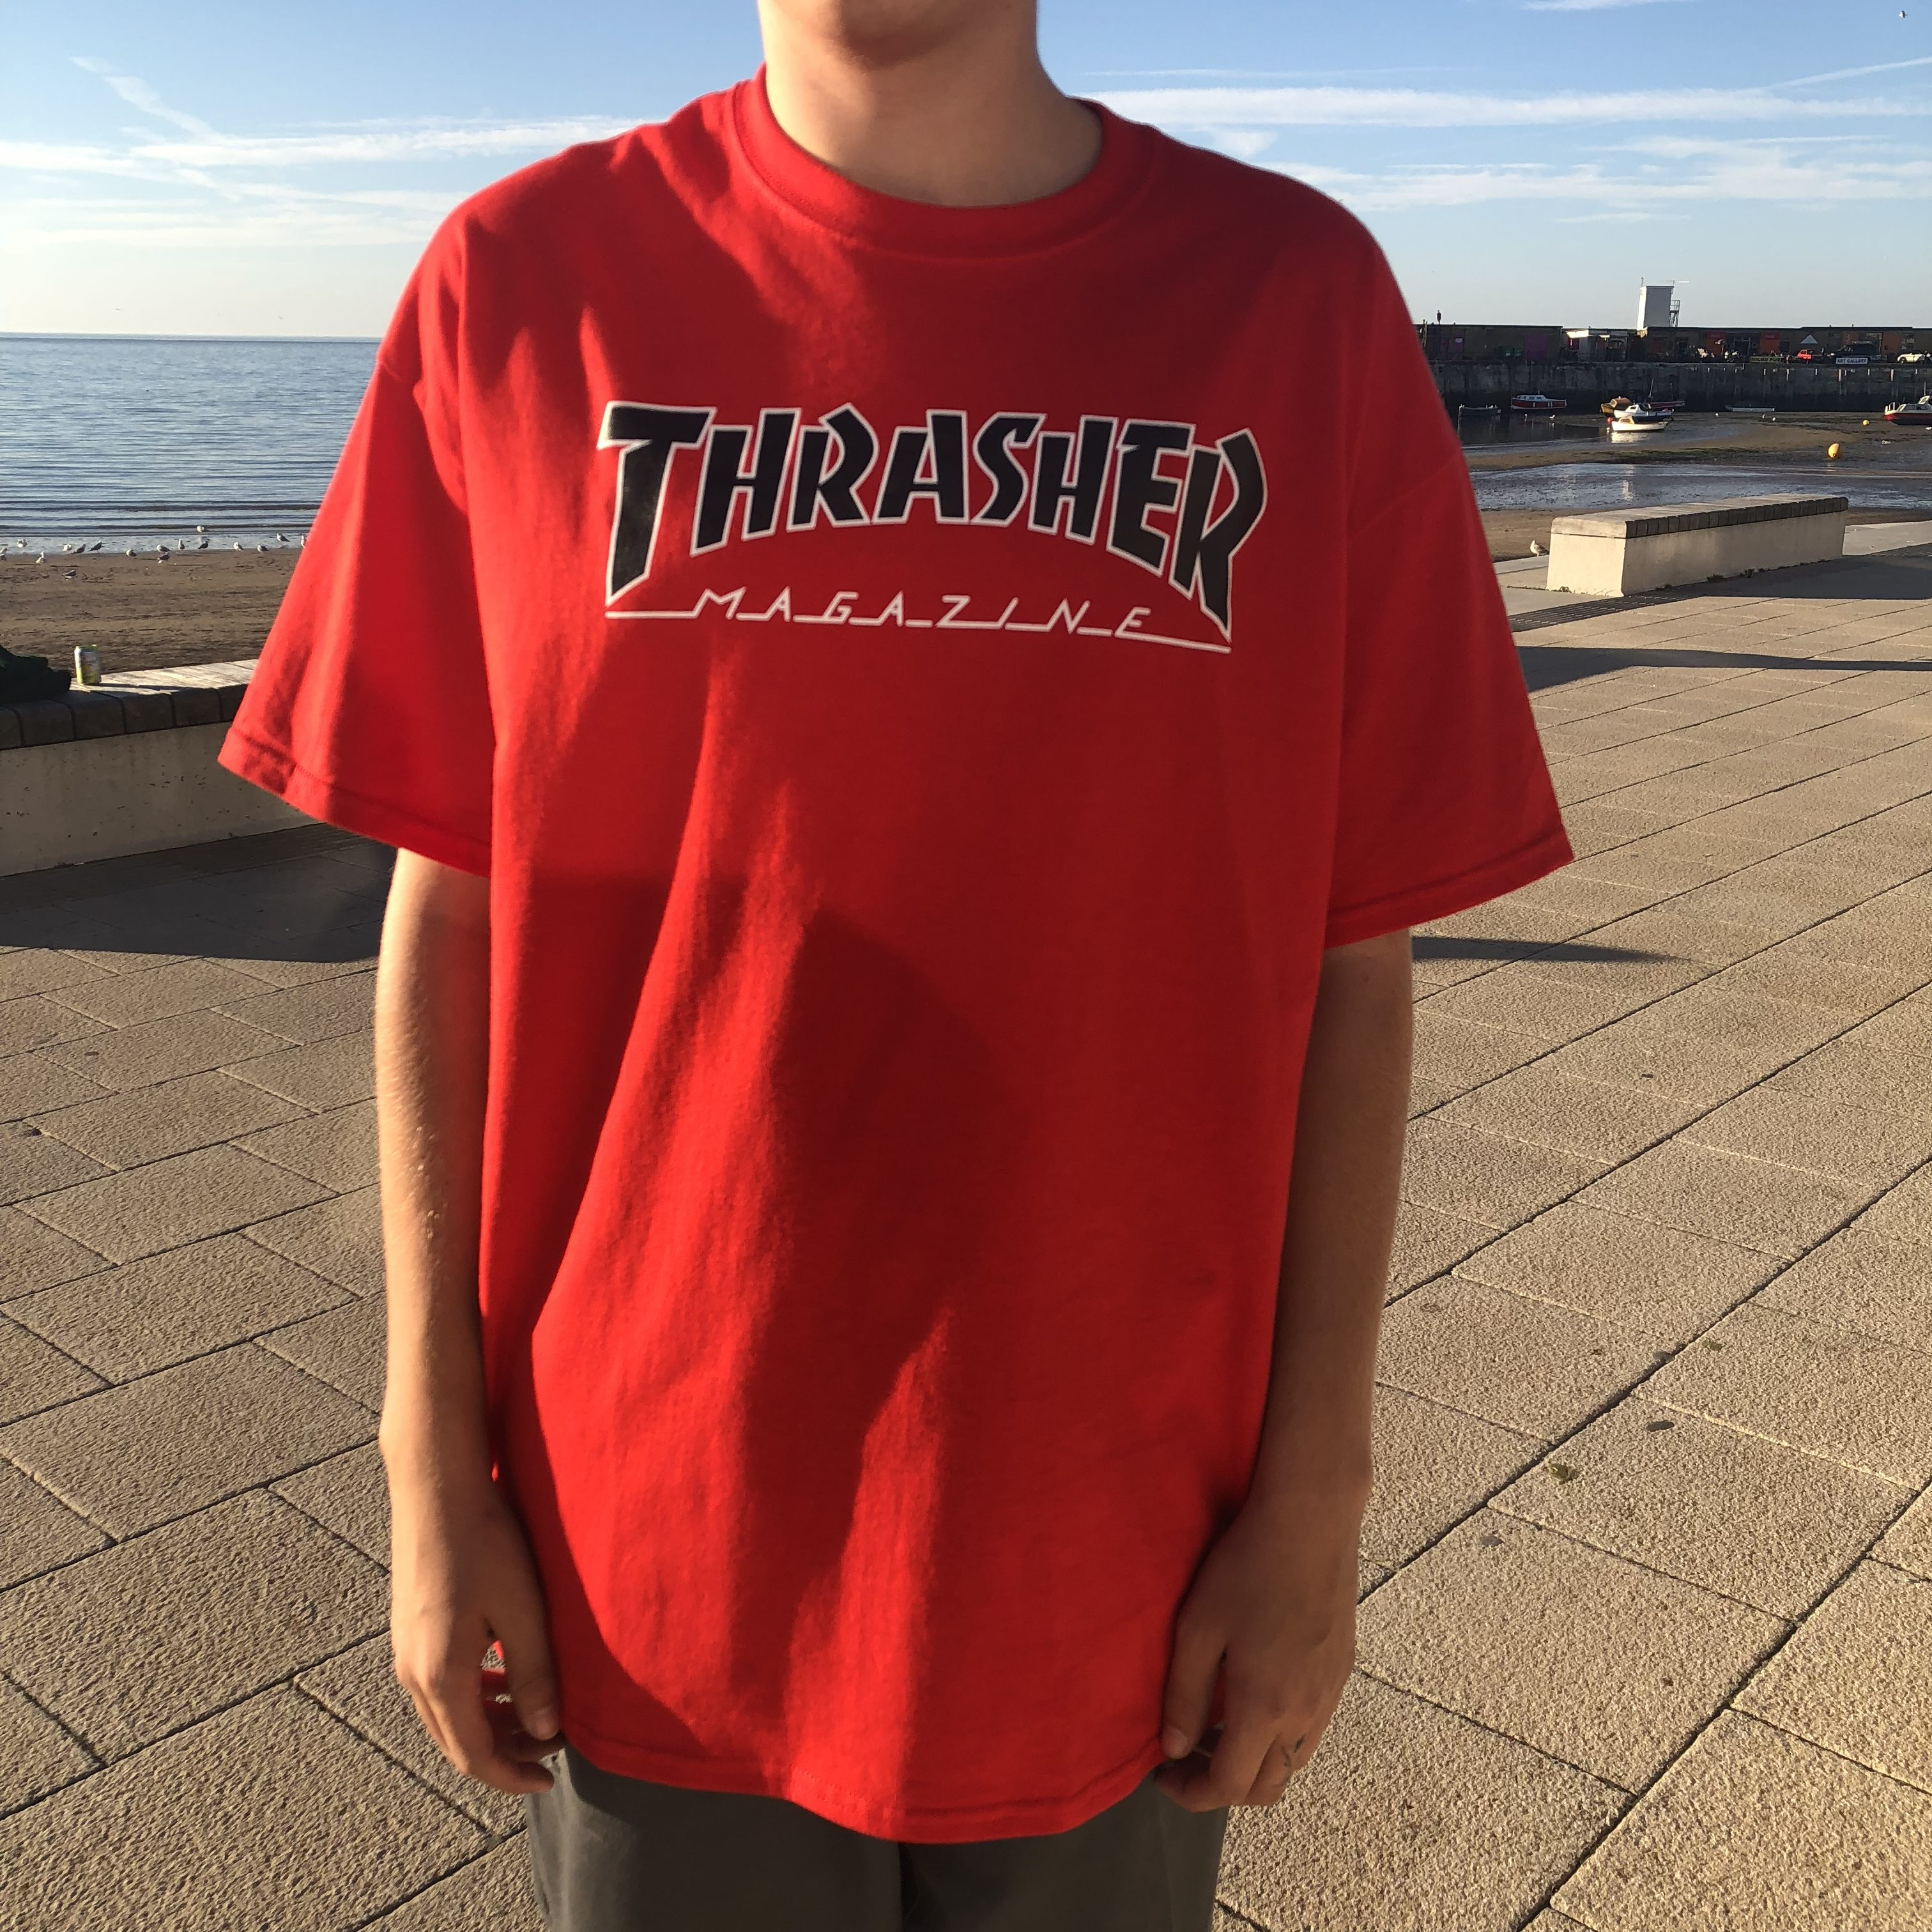 49cd35f3470 Home   Shop   Clothing   T Shirts   T-Shirts - Short Sleeve   Thrasher  Magazine Outline Logo T-Shirt Red